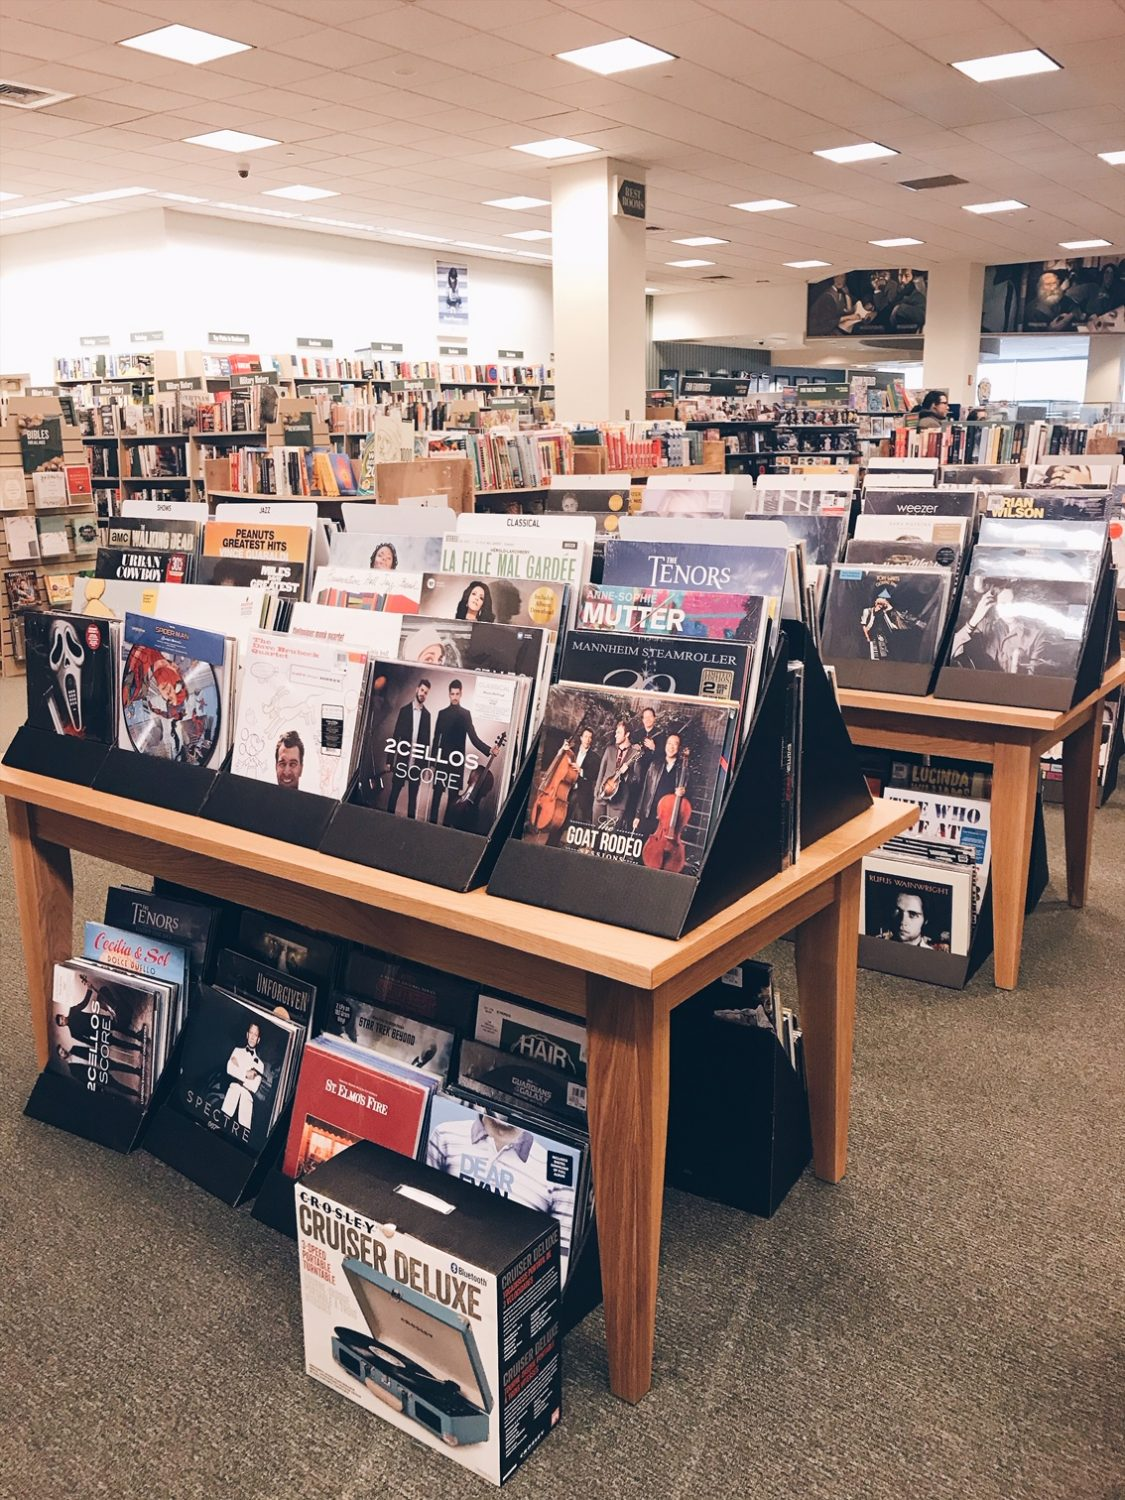 Shopping for Vinyl Records at Barnes & Noble